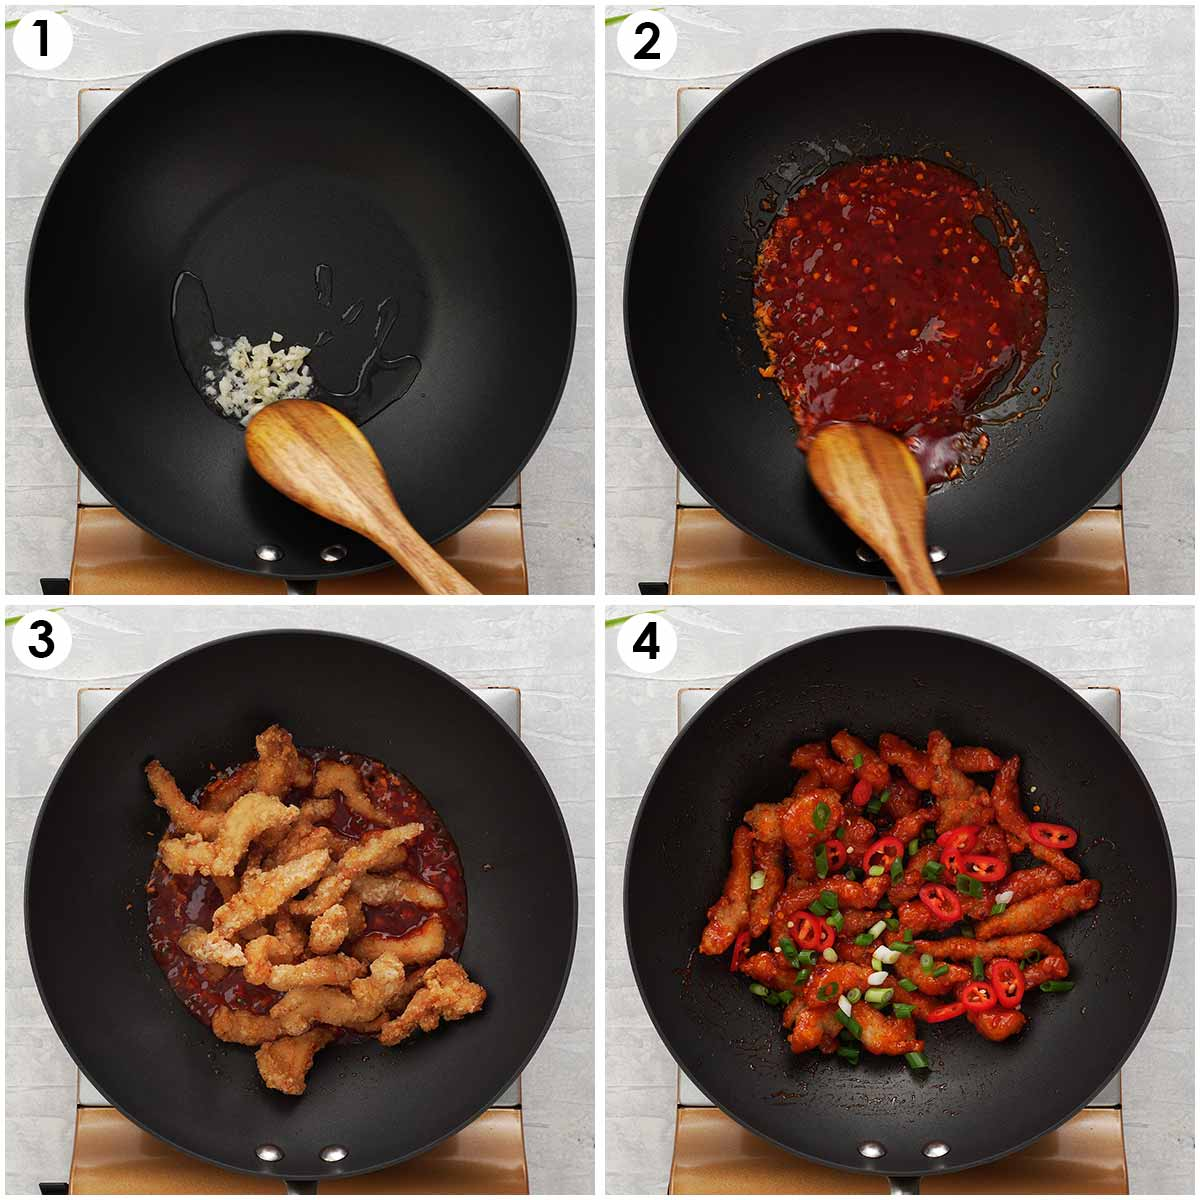 Four image collage showing cooking process of fried chicken strips tossed with chilli sauce.